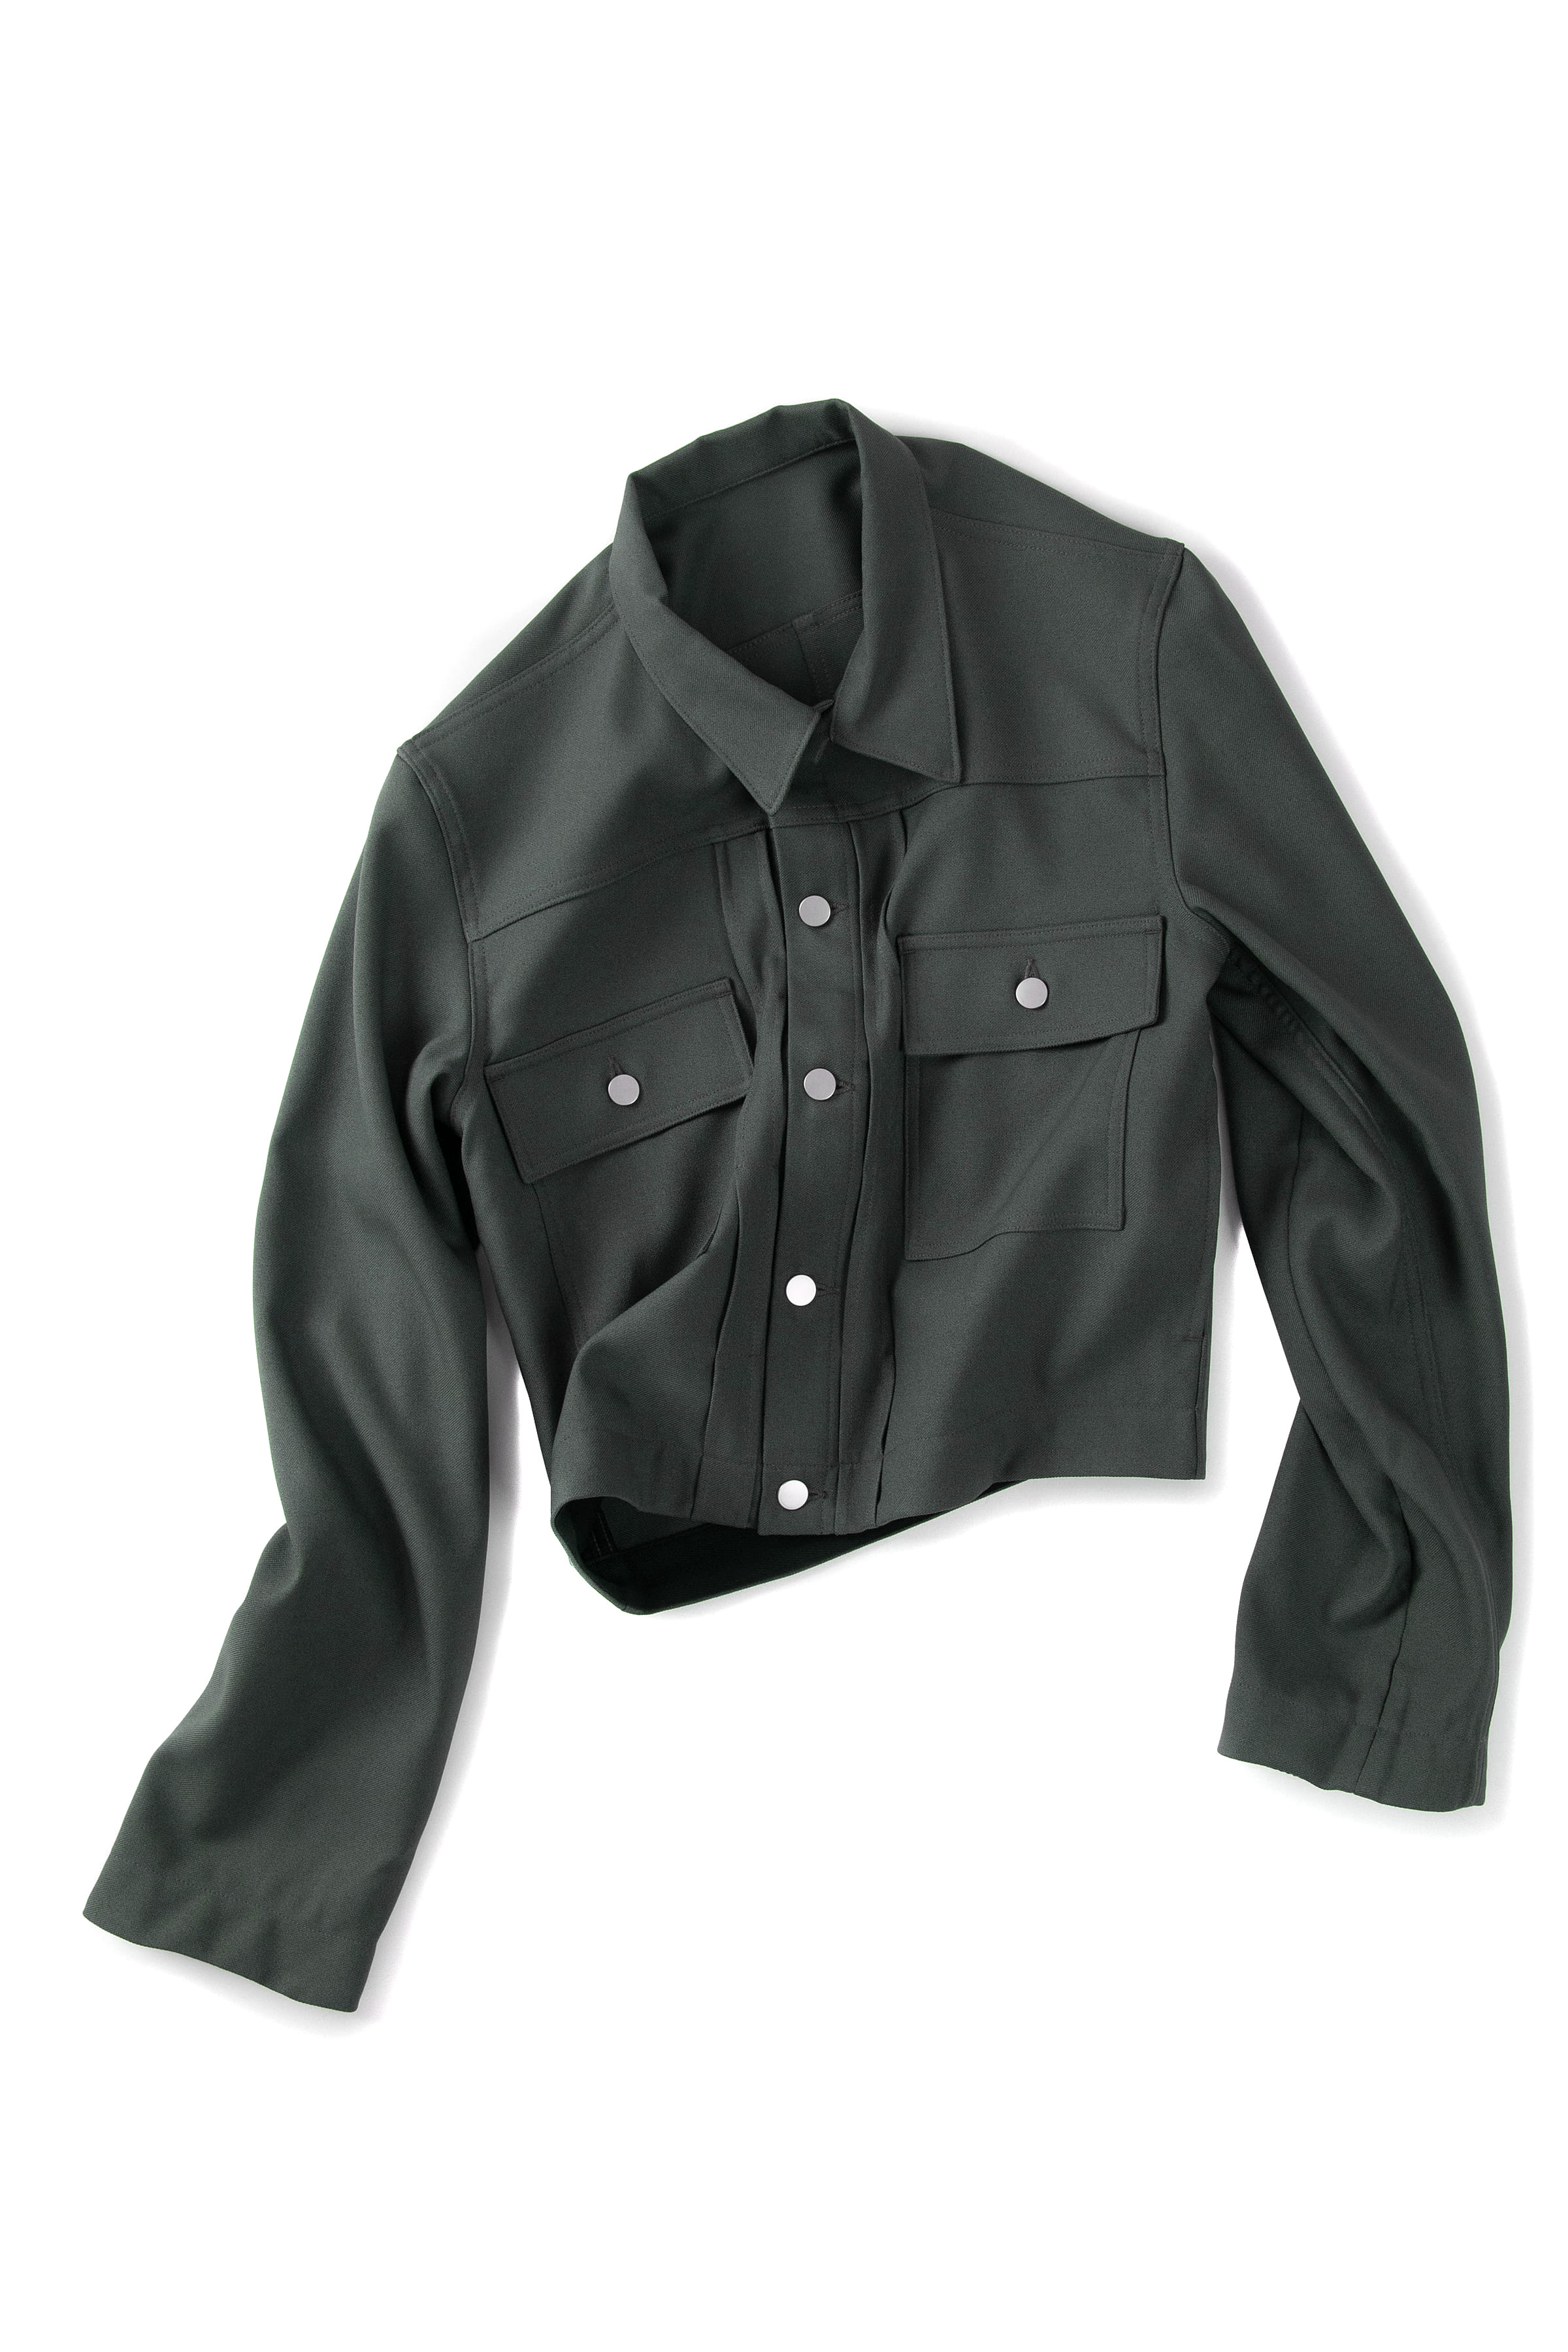 CLAMP : Sta Prest Jacket (Grey)